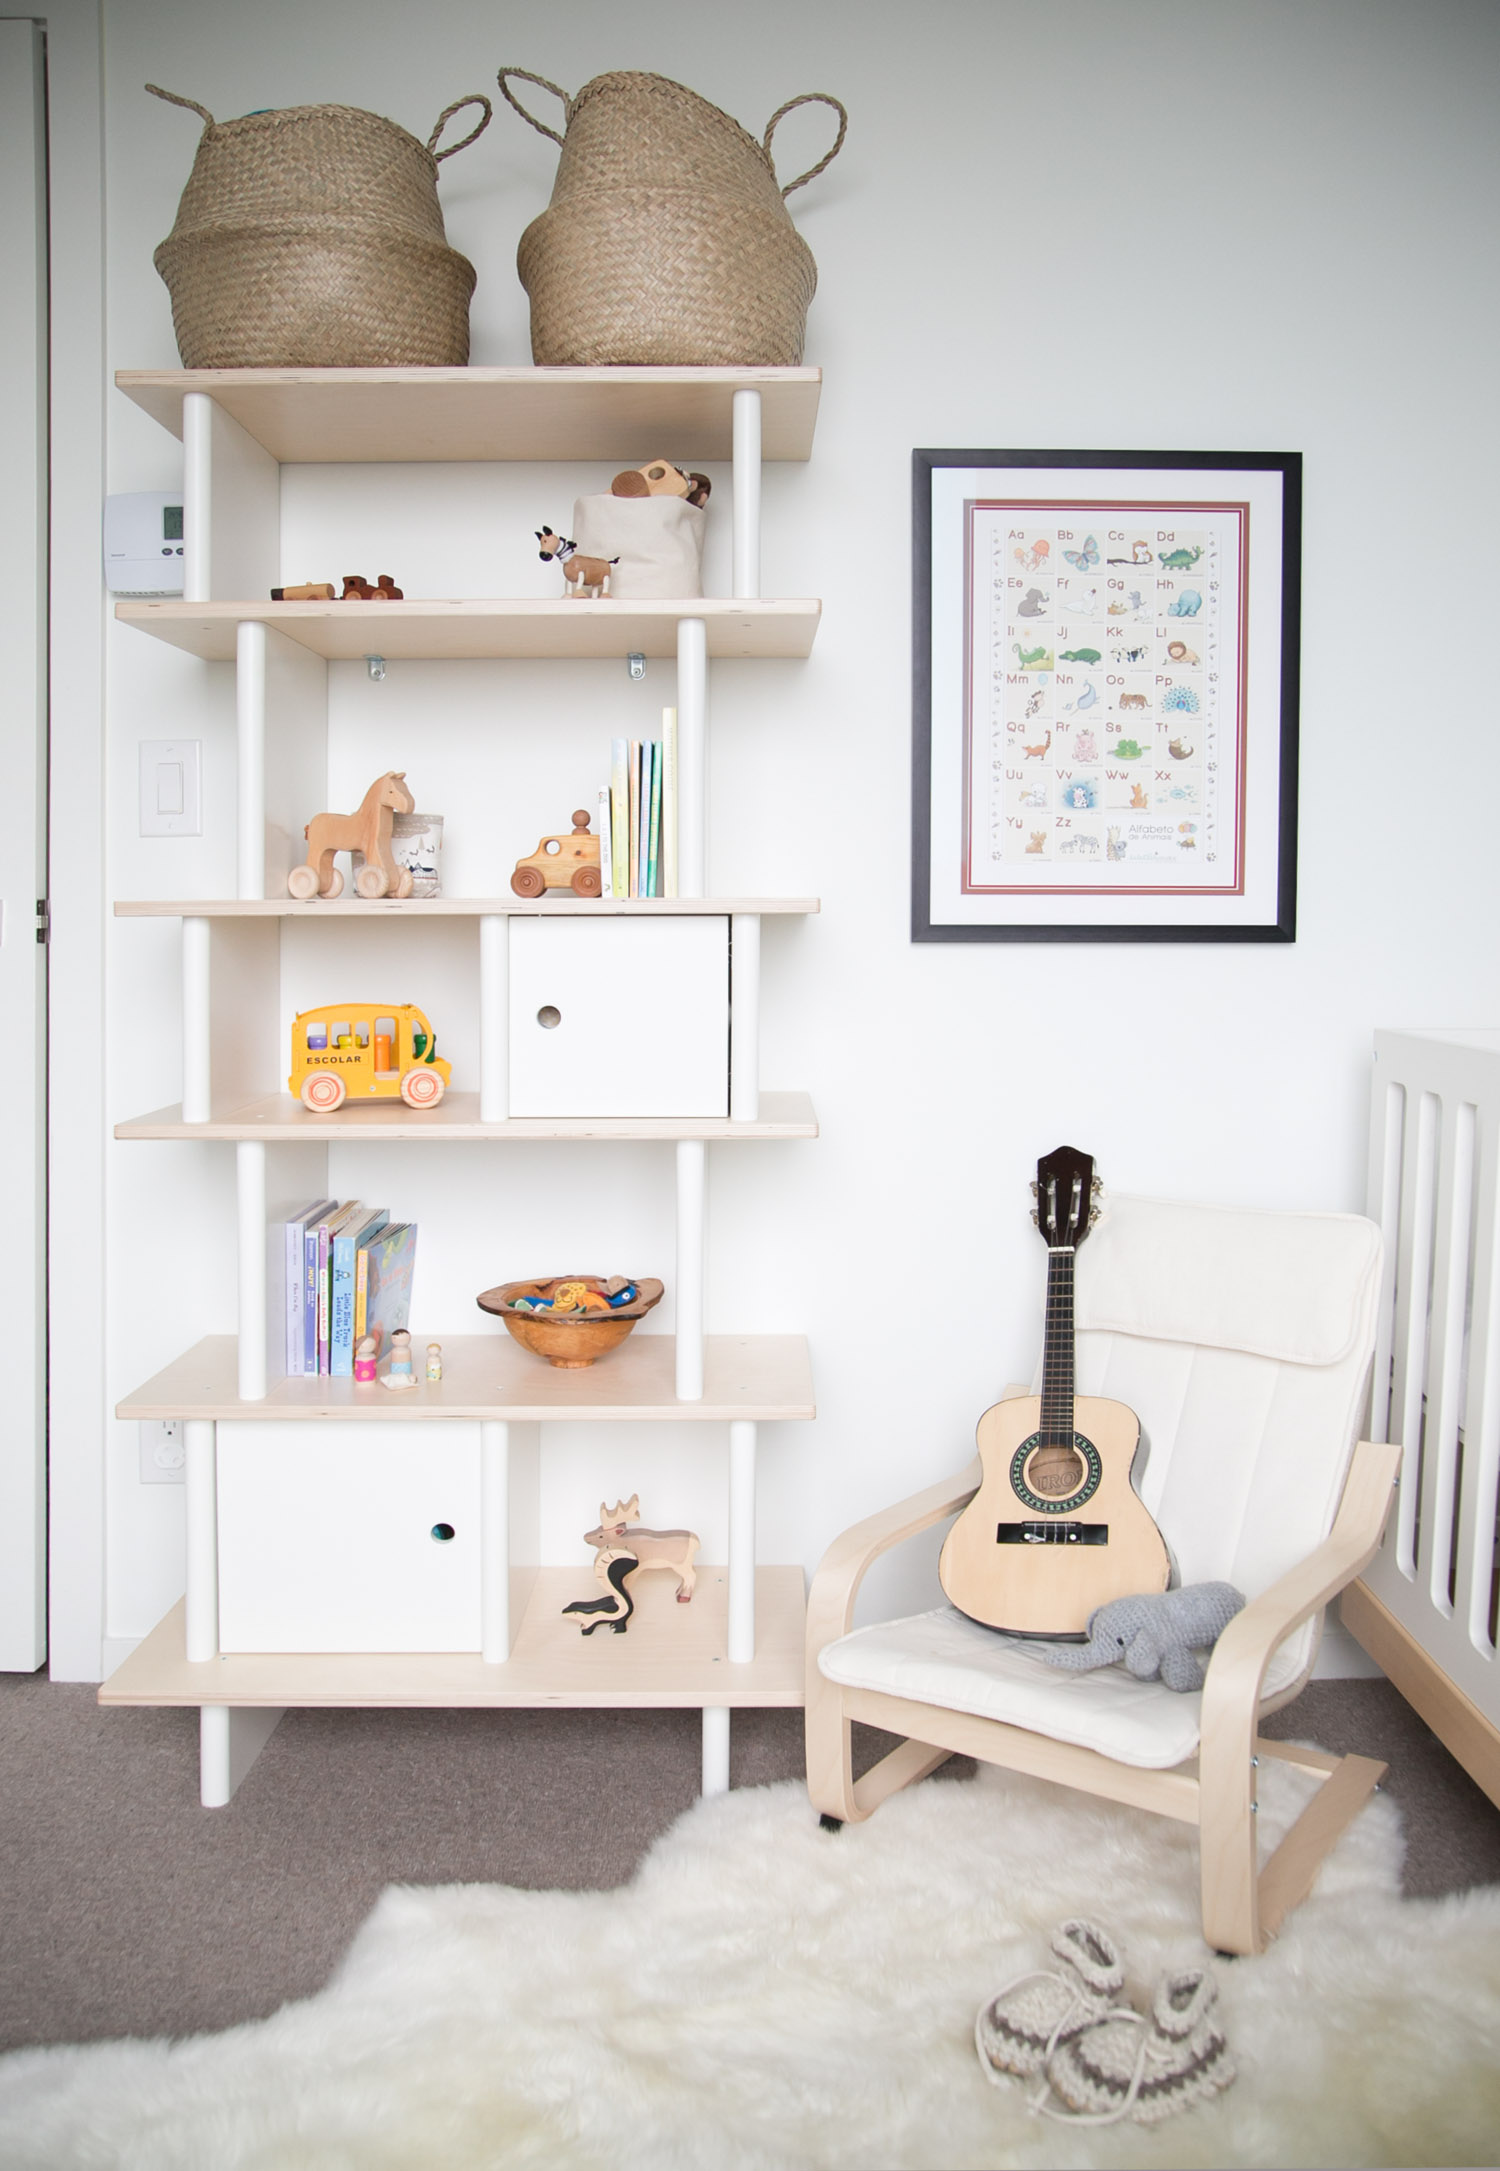 Oeuf bookshelf for kids